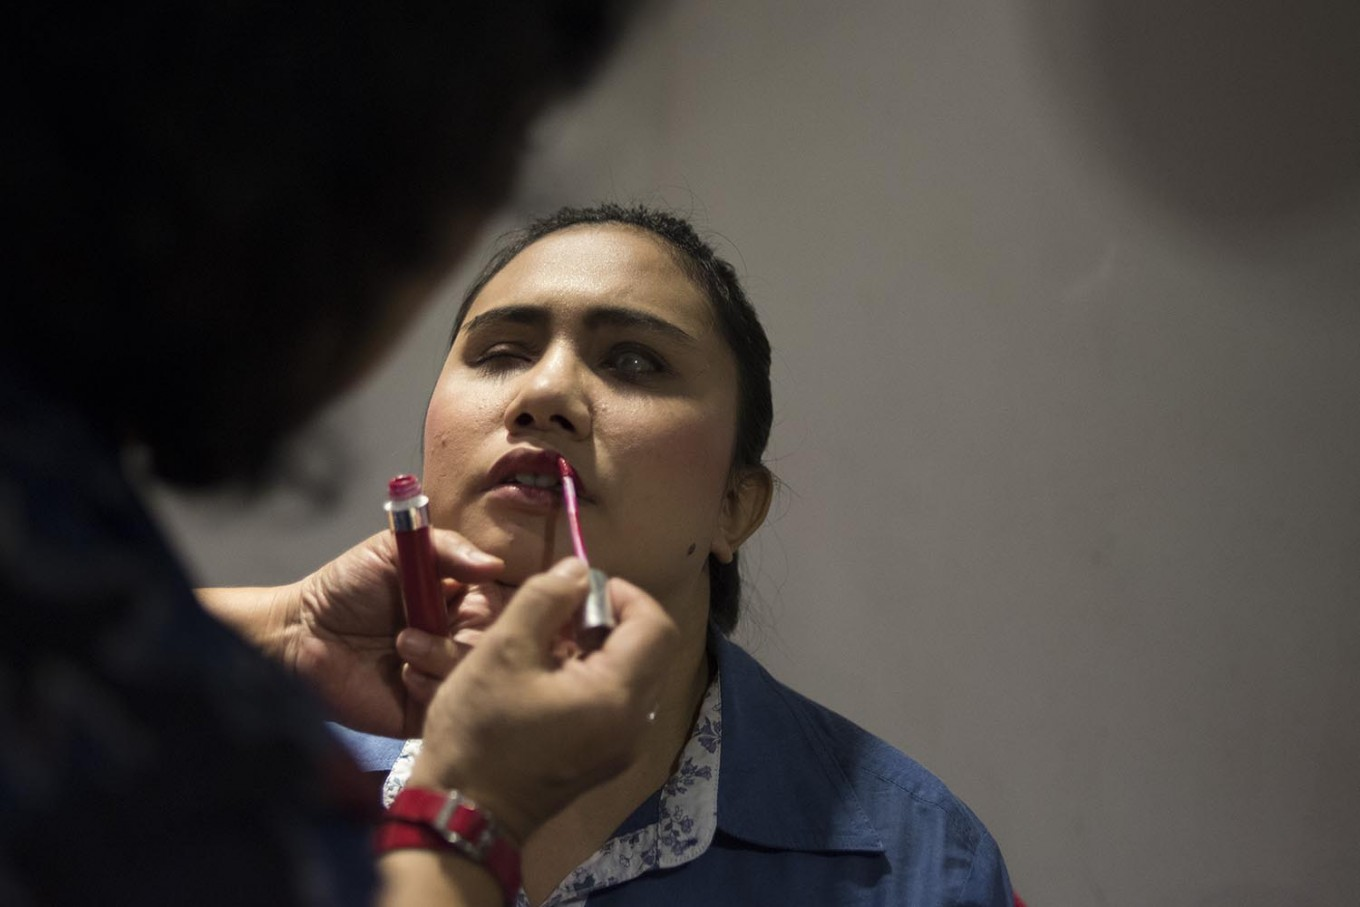 A member of the Pelita Monas Foundation gets ready to perform during Express to Impress in @america. JP/Rosa Panggabean